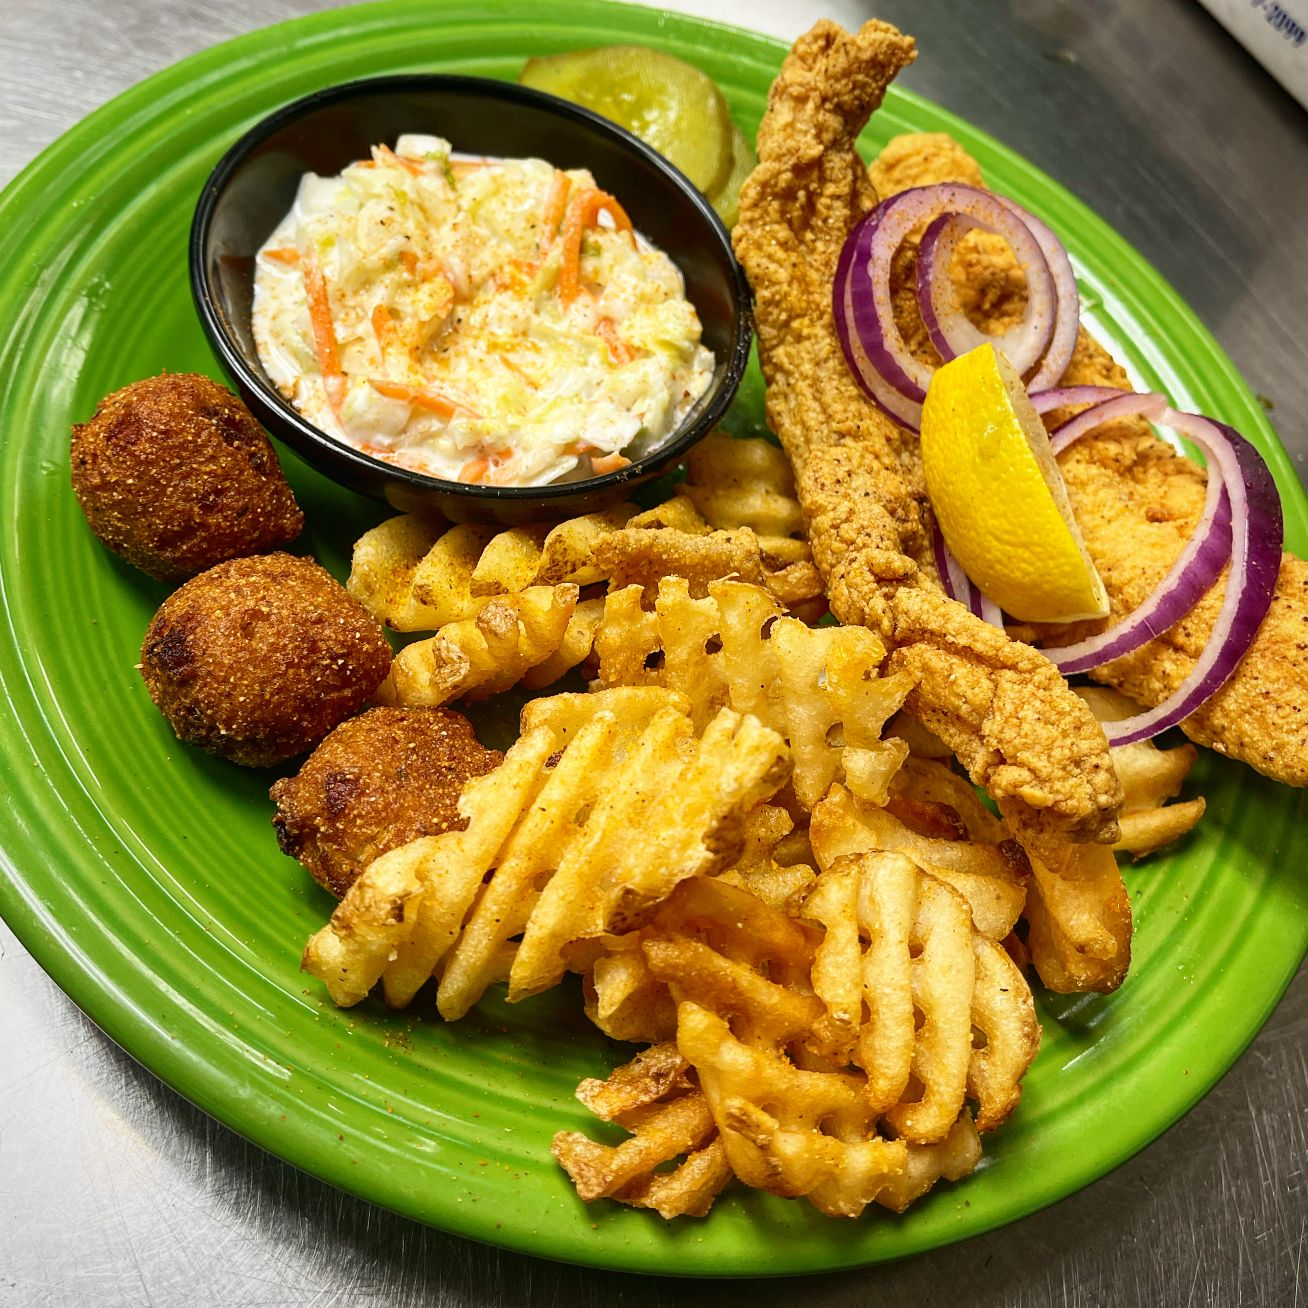 fried fish with hushpuppies and waffle fries